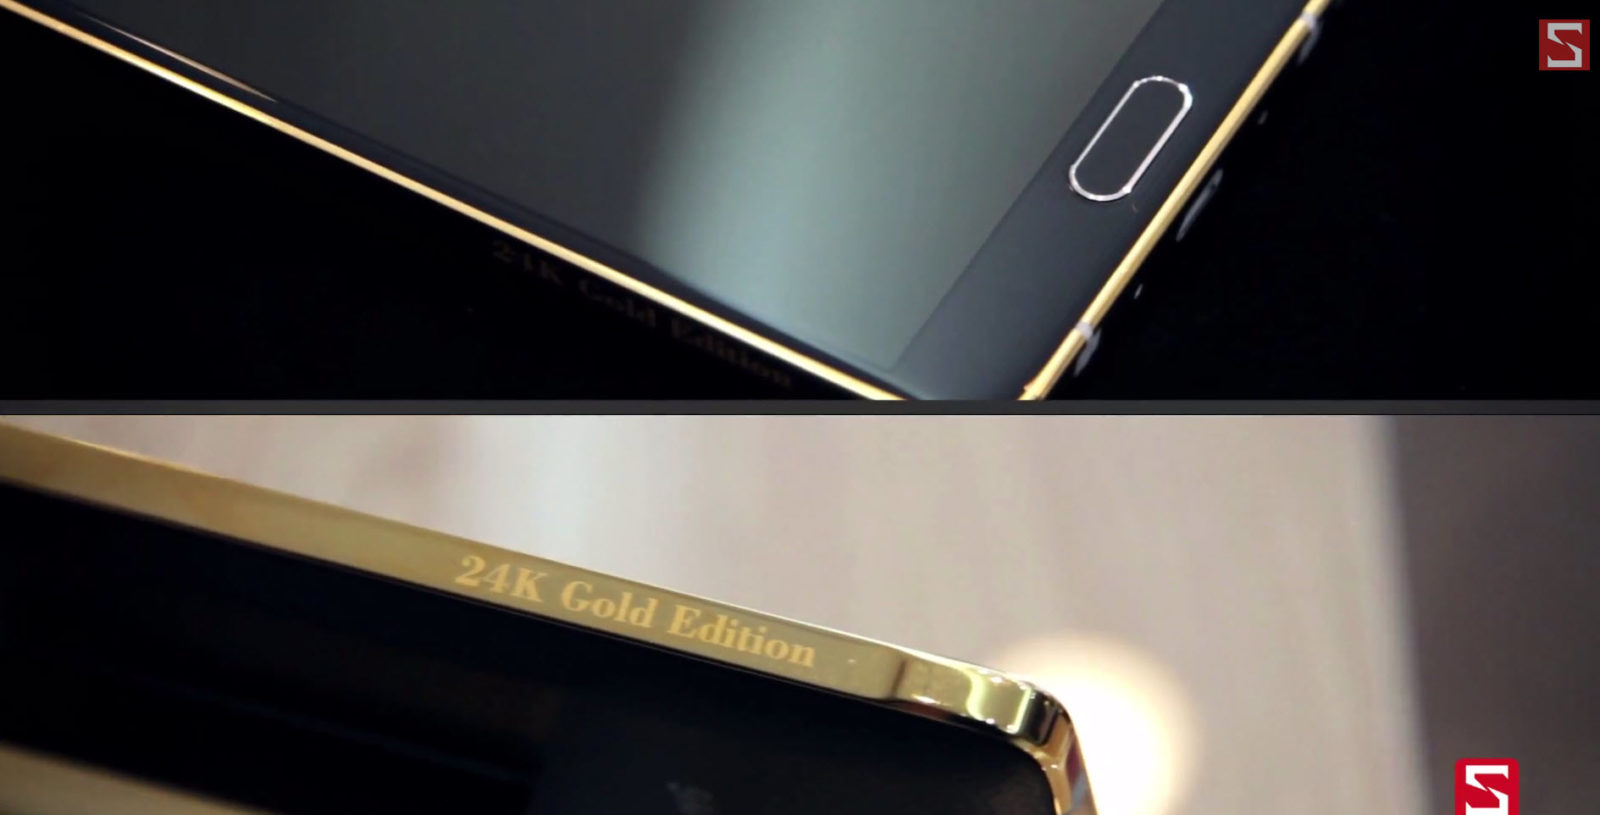 Galaxy Note 4 Gold Edition